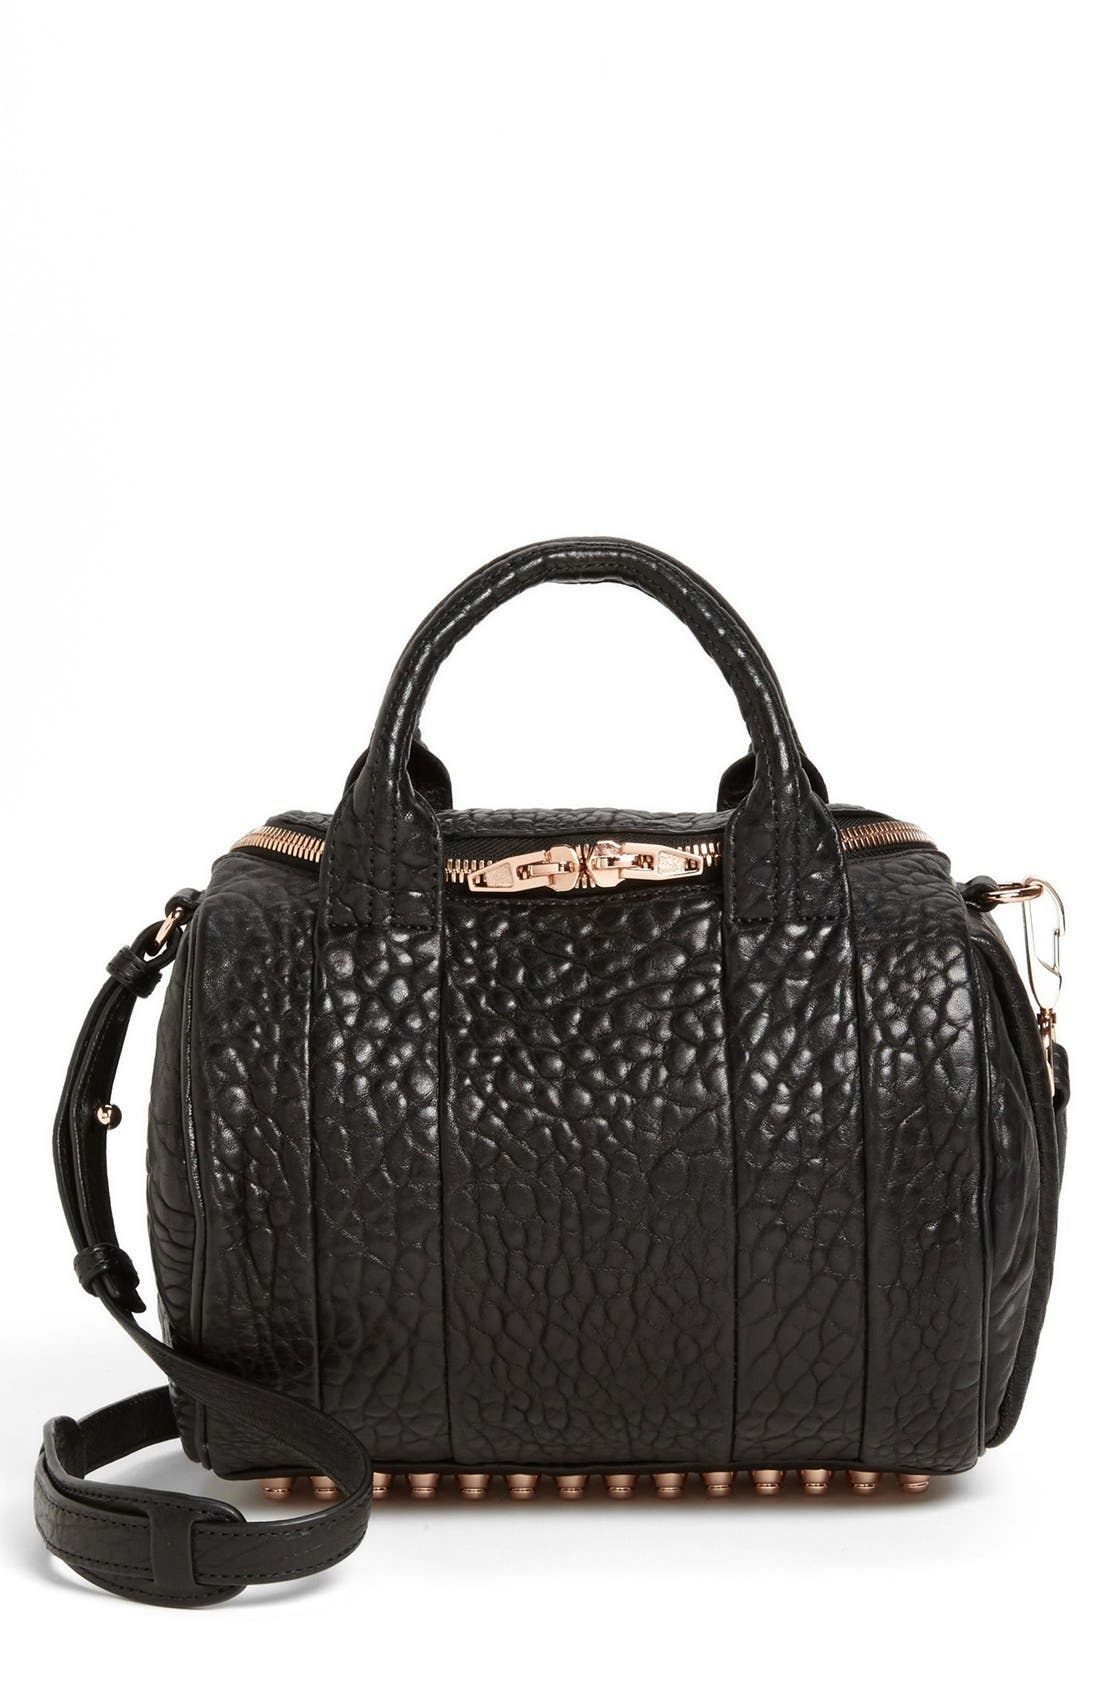 Main Image - Alexander Wang 'Rockie - Rose Gold' Leather Crossbody Satchel